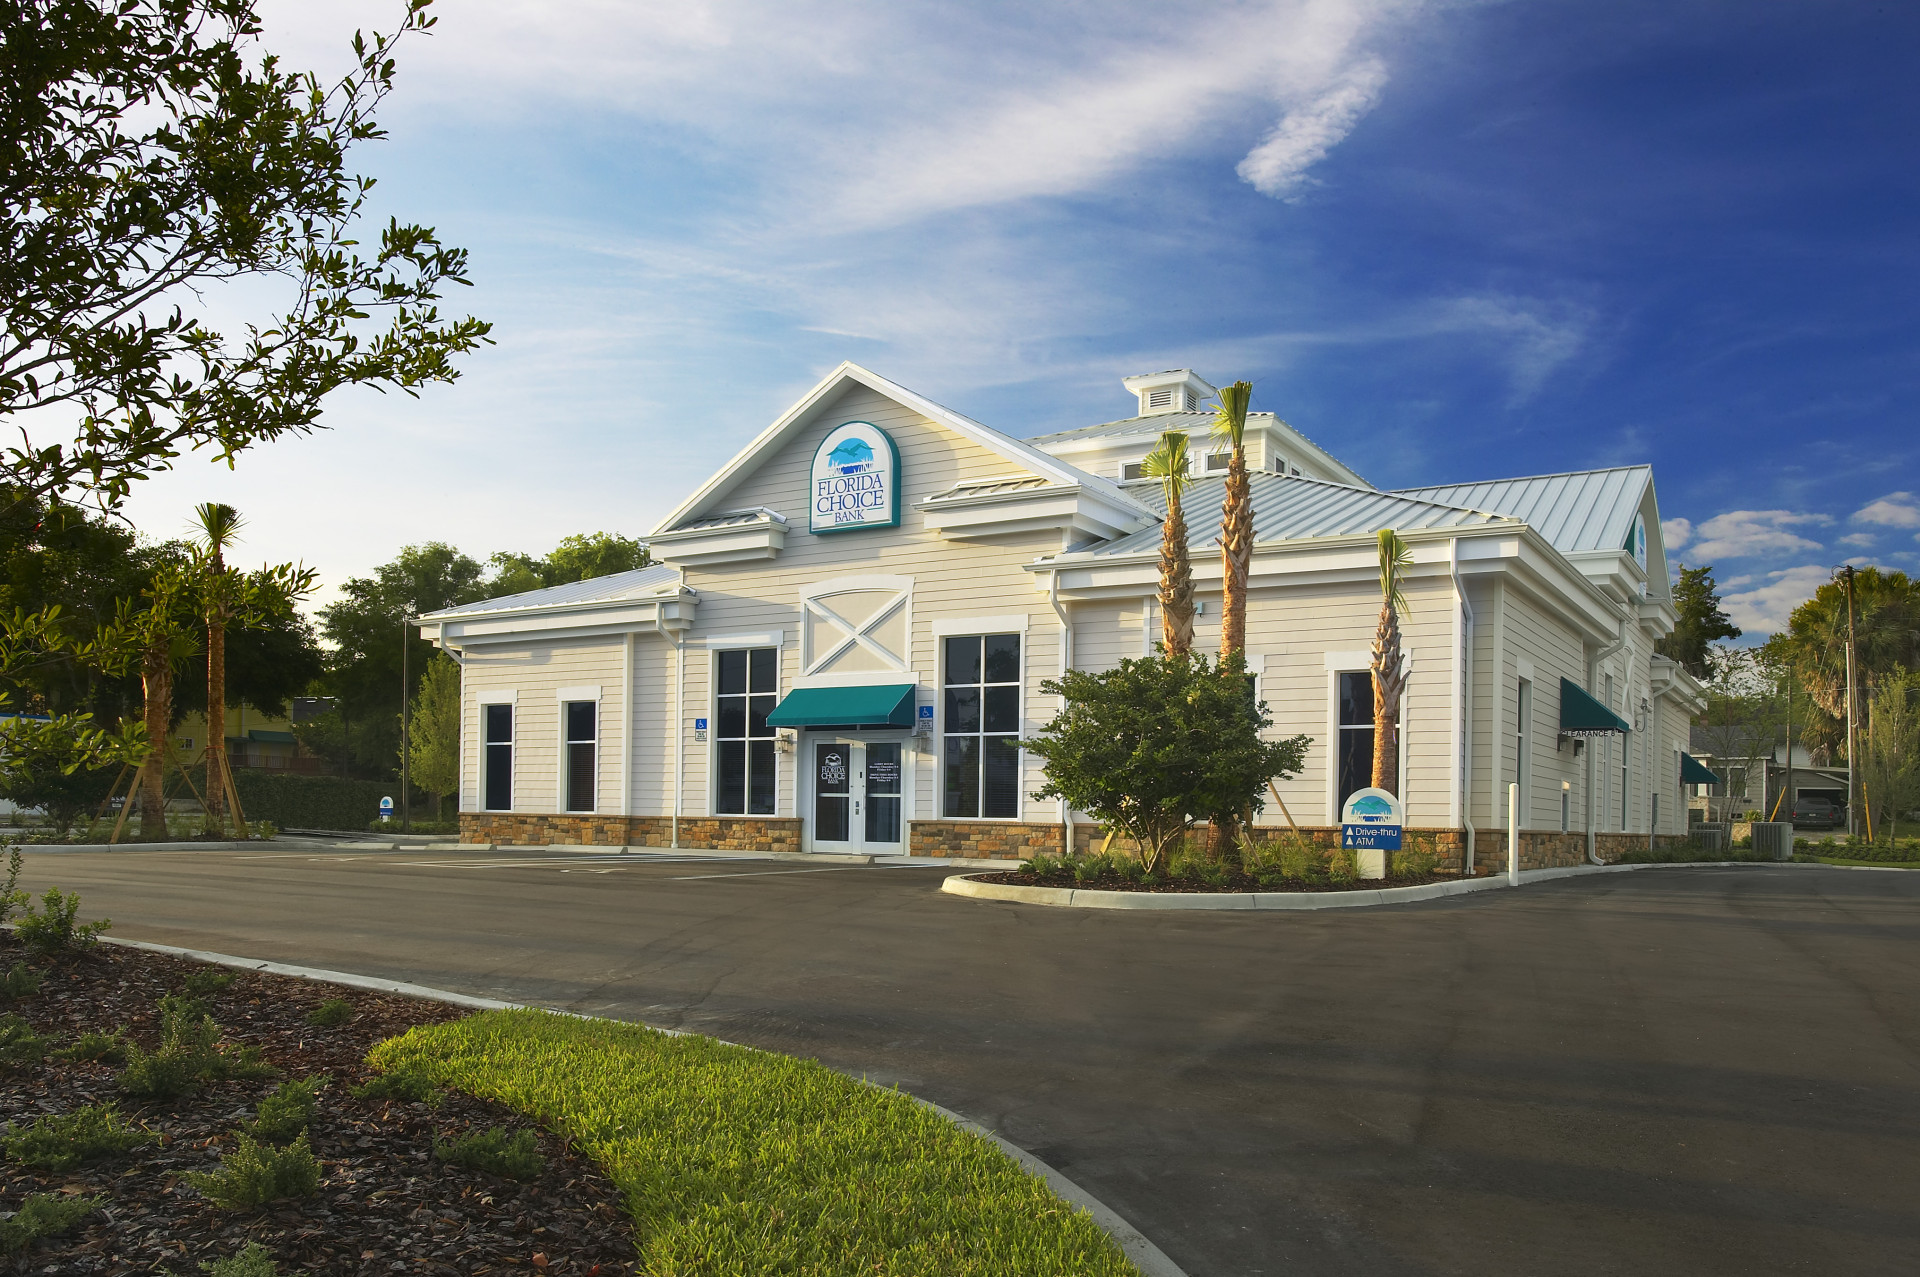 RBC FLORIDA CHOICE BANK MAIN PHOTO (2)